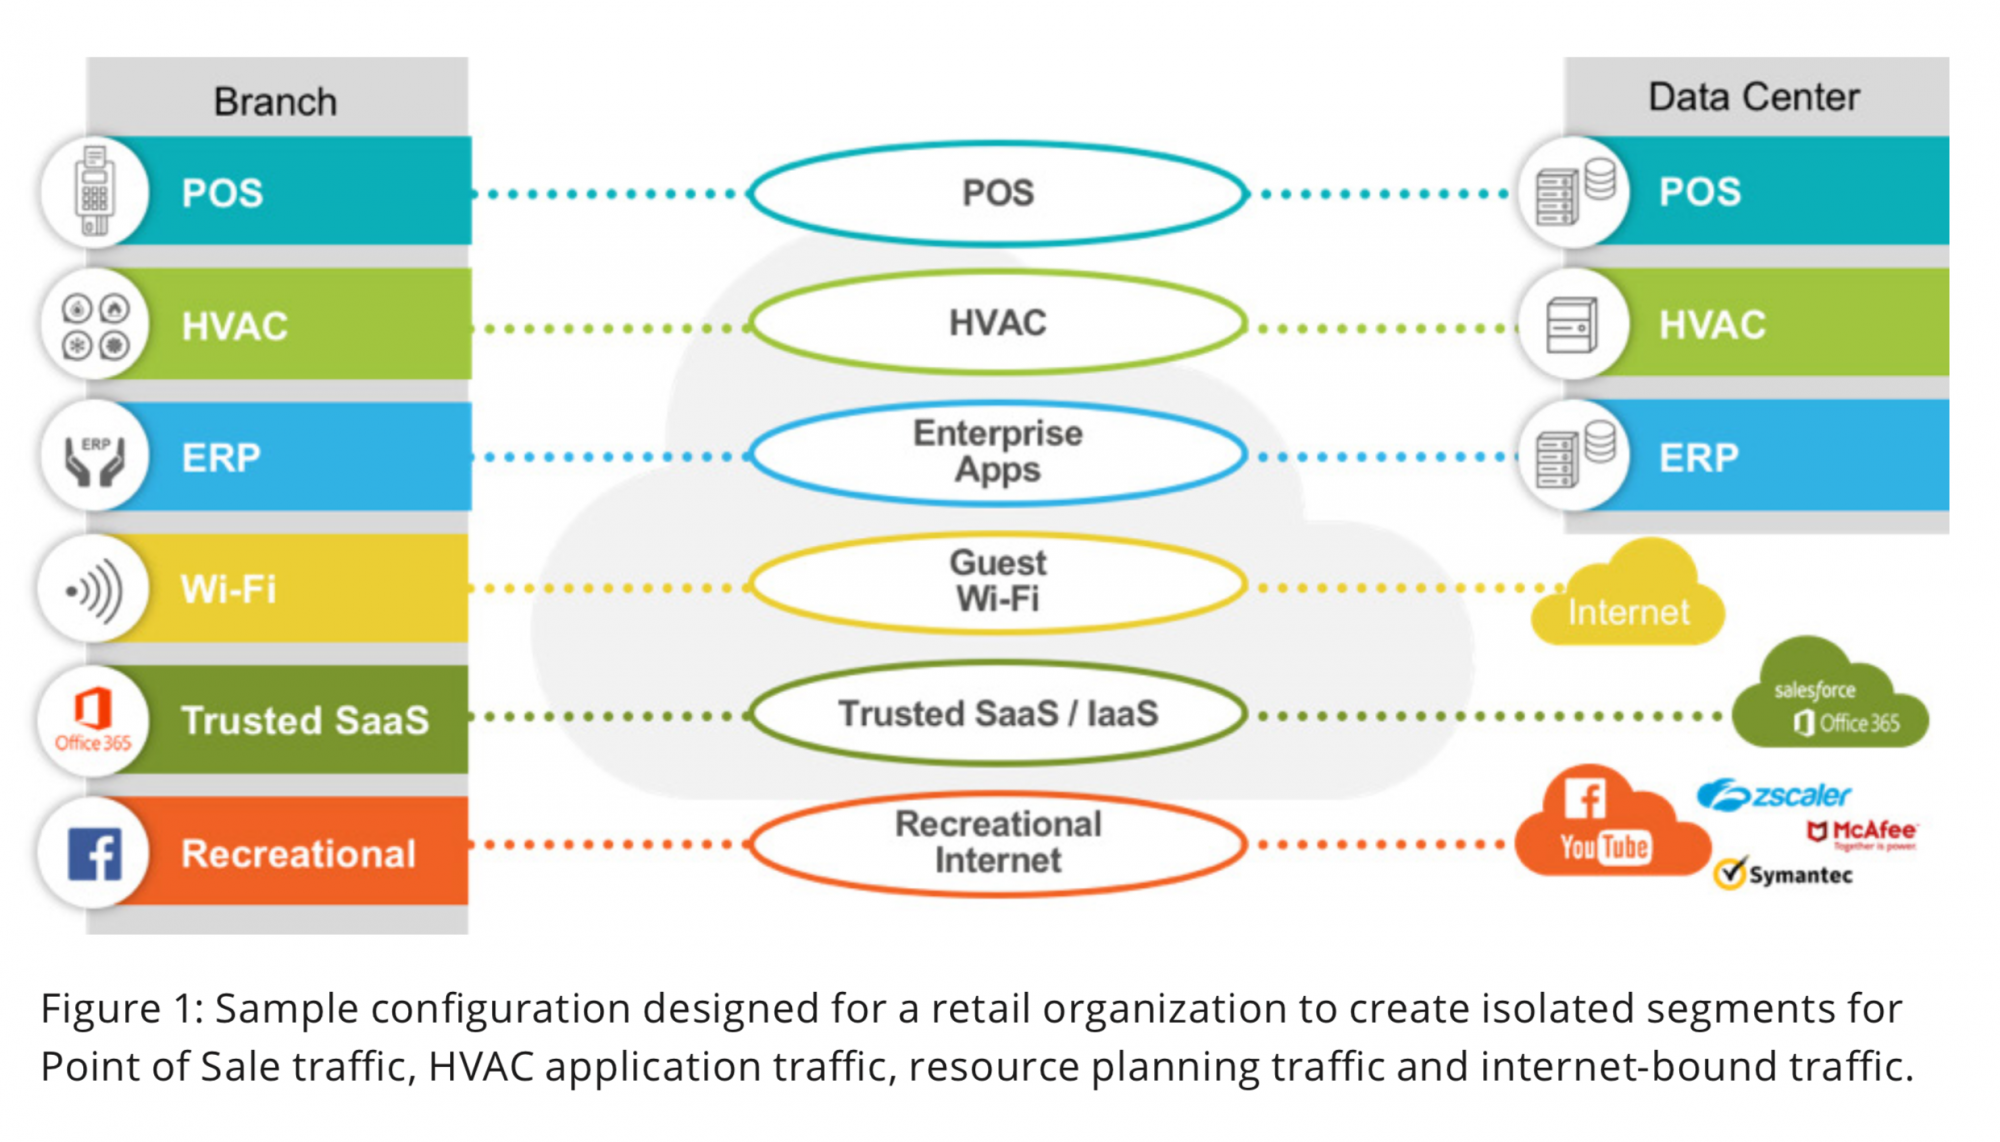 Figure 1: Sample configuration designed for a retail organization to create isolated segments for Point of Sale traffic, HVAC application traffic, resource planning traffic and internet-bound traffic.